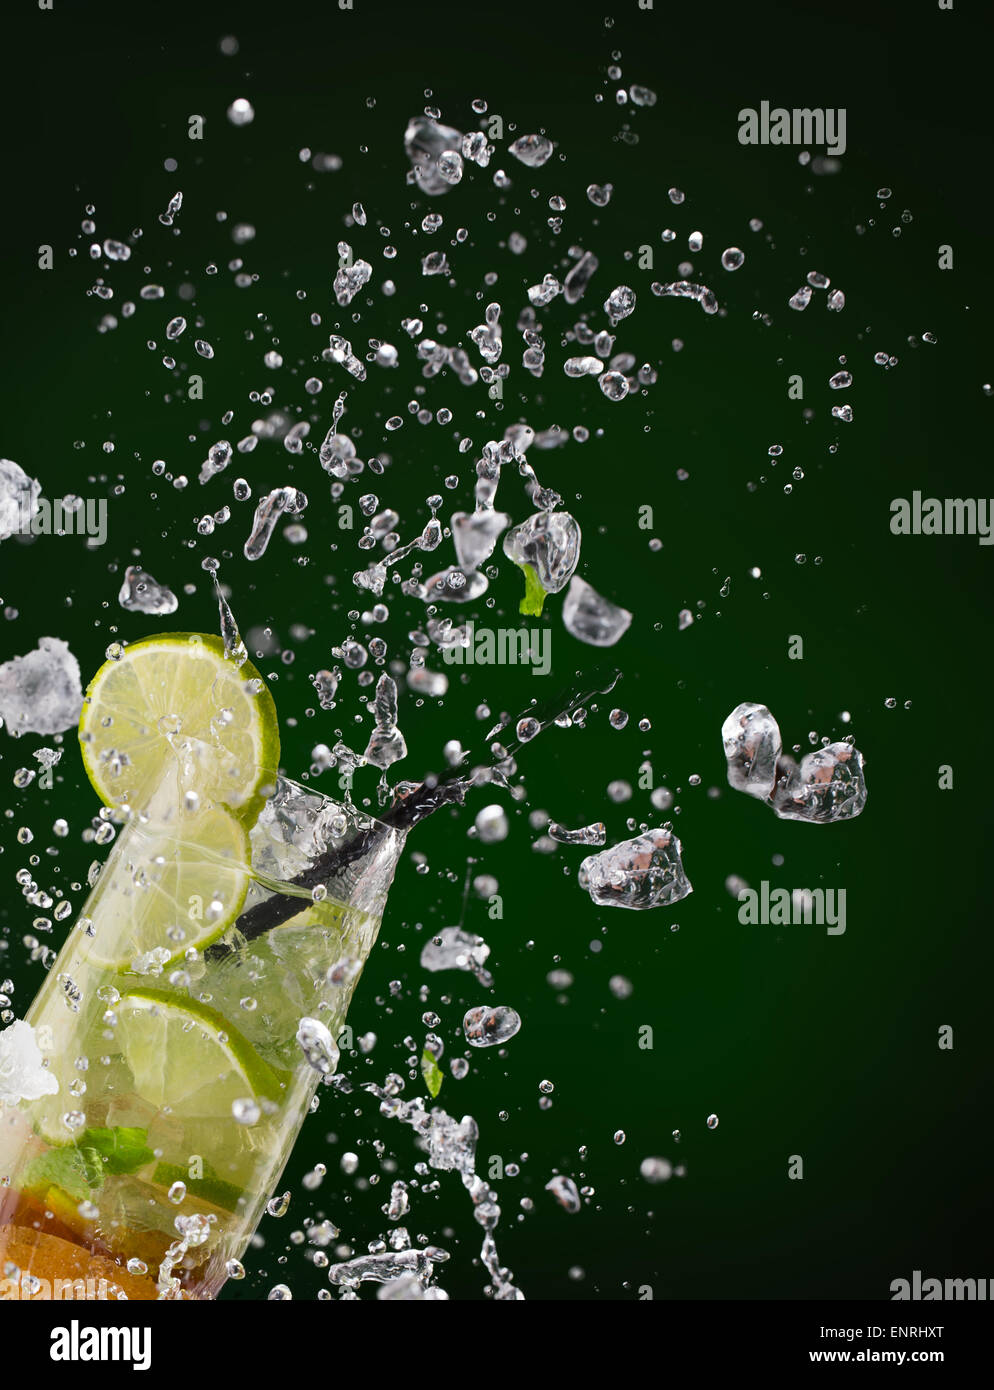 Fresh mojito drink with ice cubes and splashes on black background Stock Photo